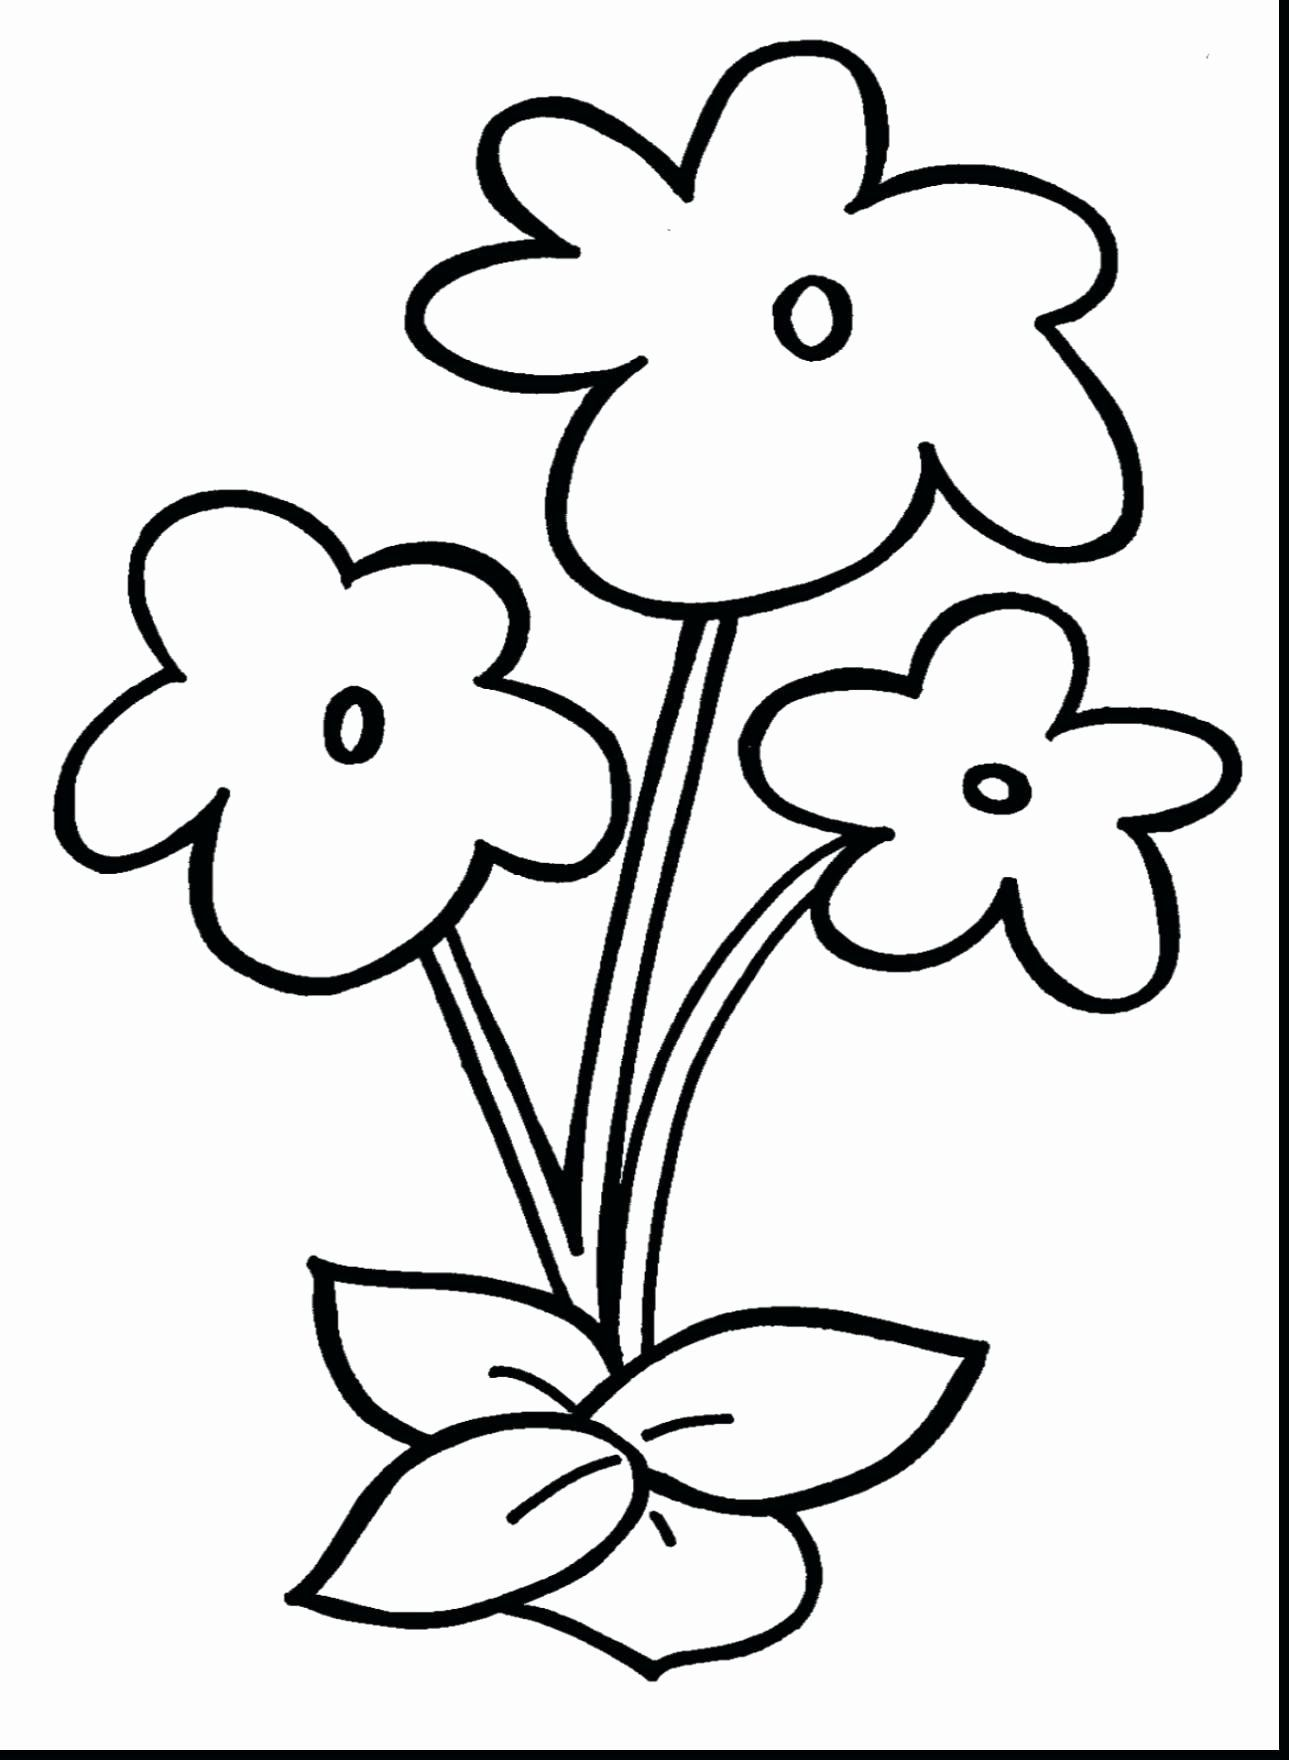 Simple Anatomy Coloring Pages Luxury Printable Daffodil Coloring